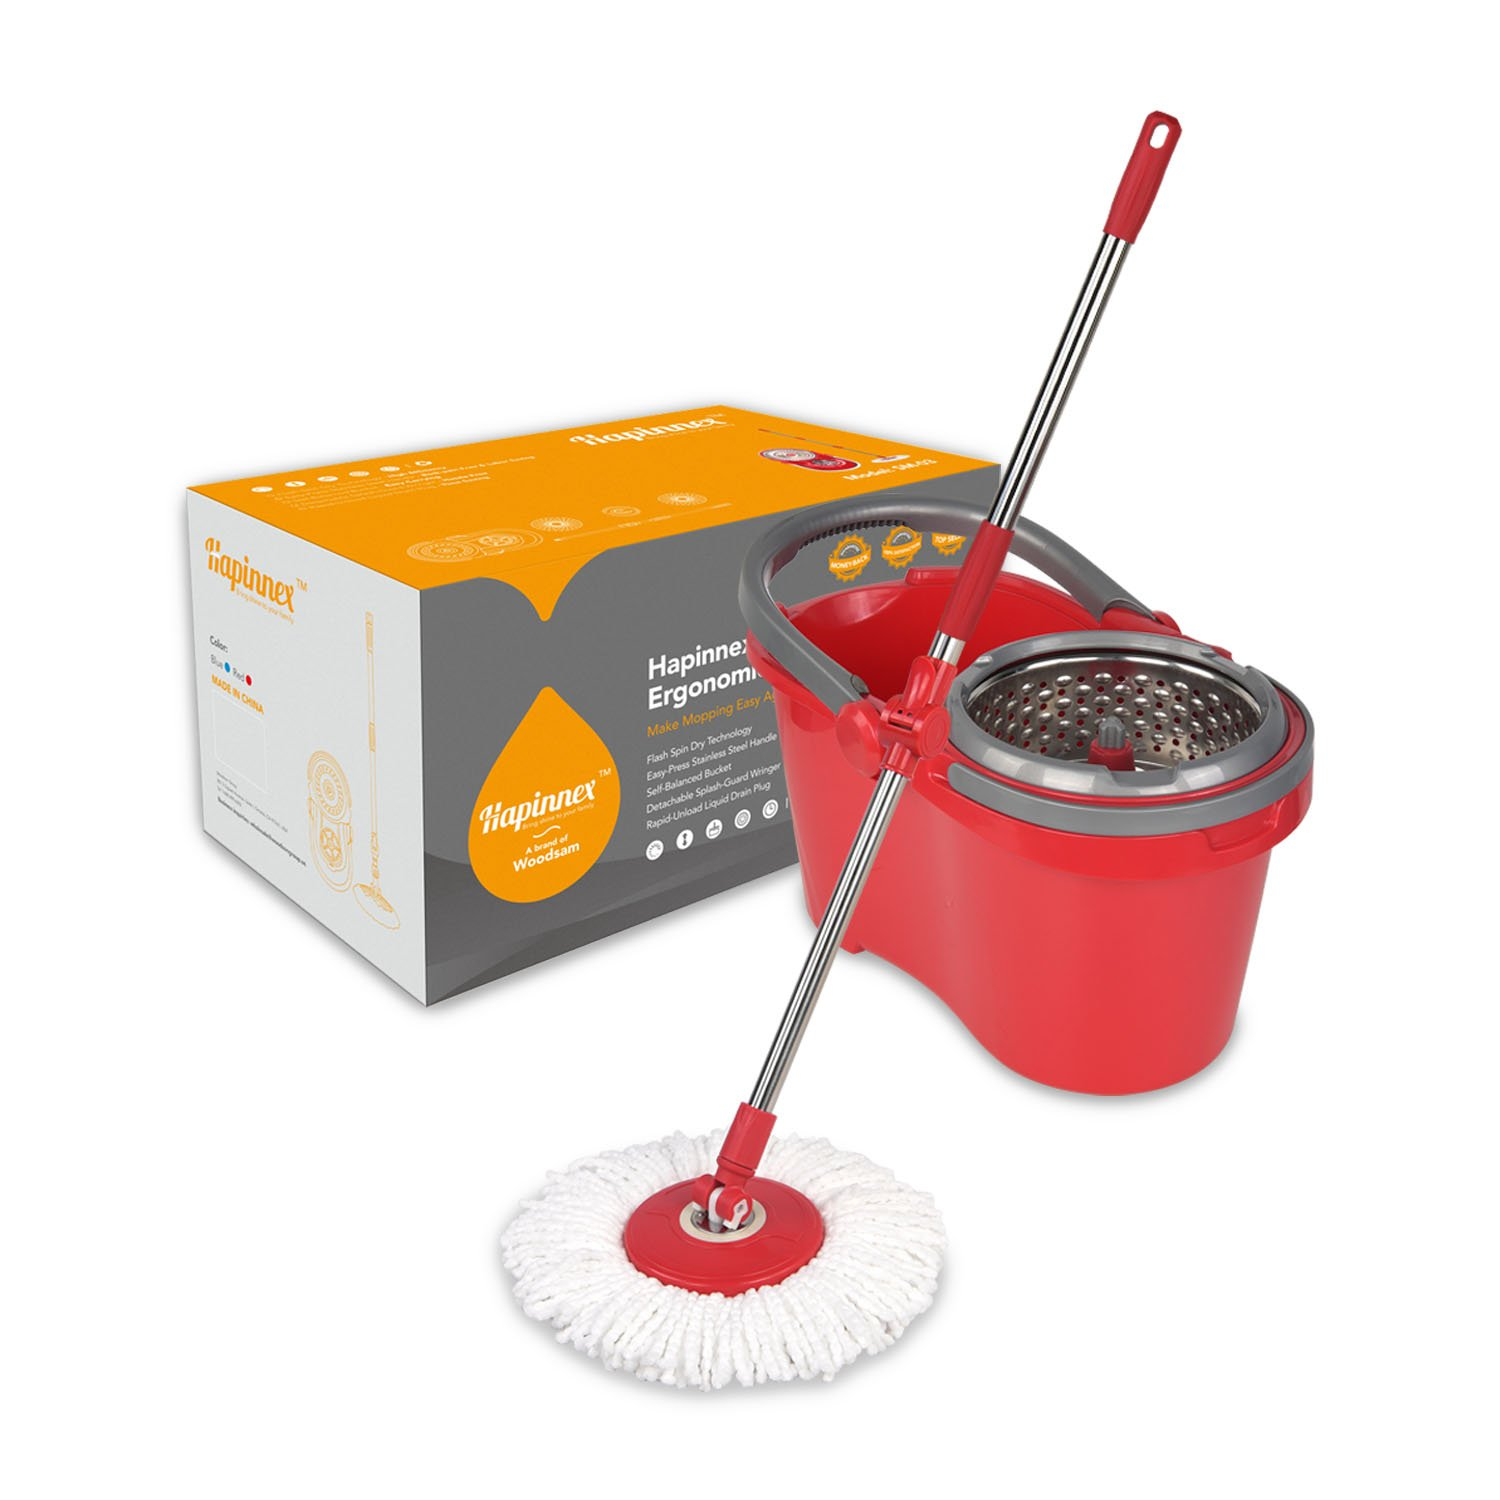 Hapinnex Spinning Mop Bucket Set - For Home Kitchen Floor Cleaning - Wet/Dry Usage on Hardwood & Tile - Upgraded Self-Balanced System With 2 Washable Microfiber Mop Heads Replacements